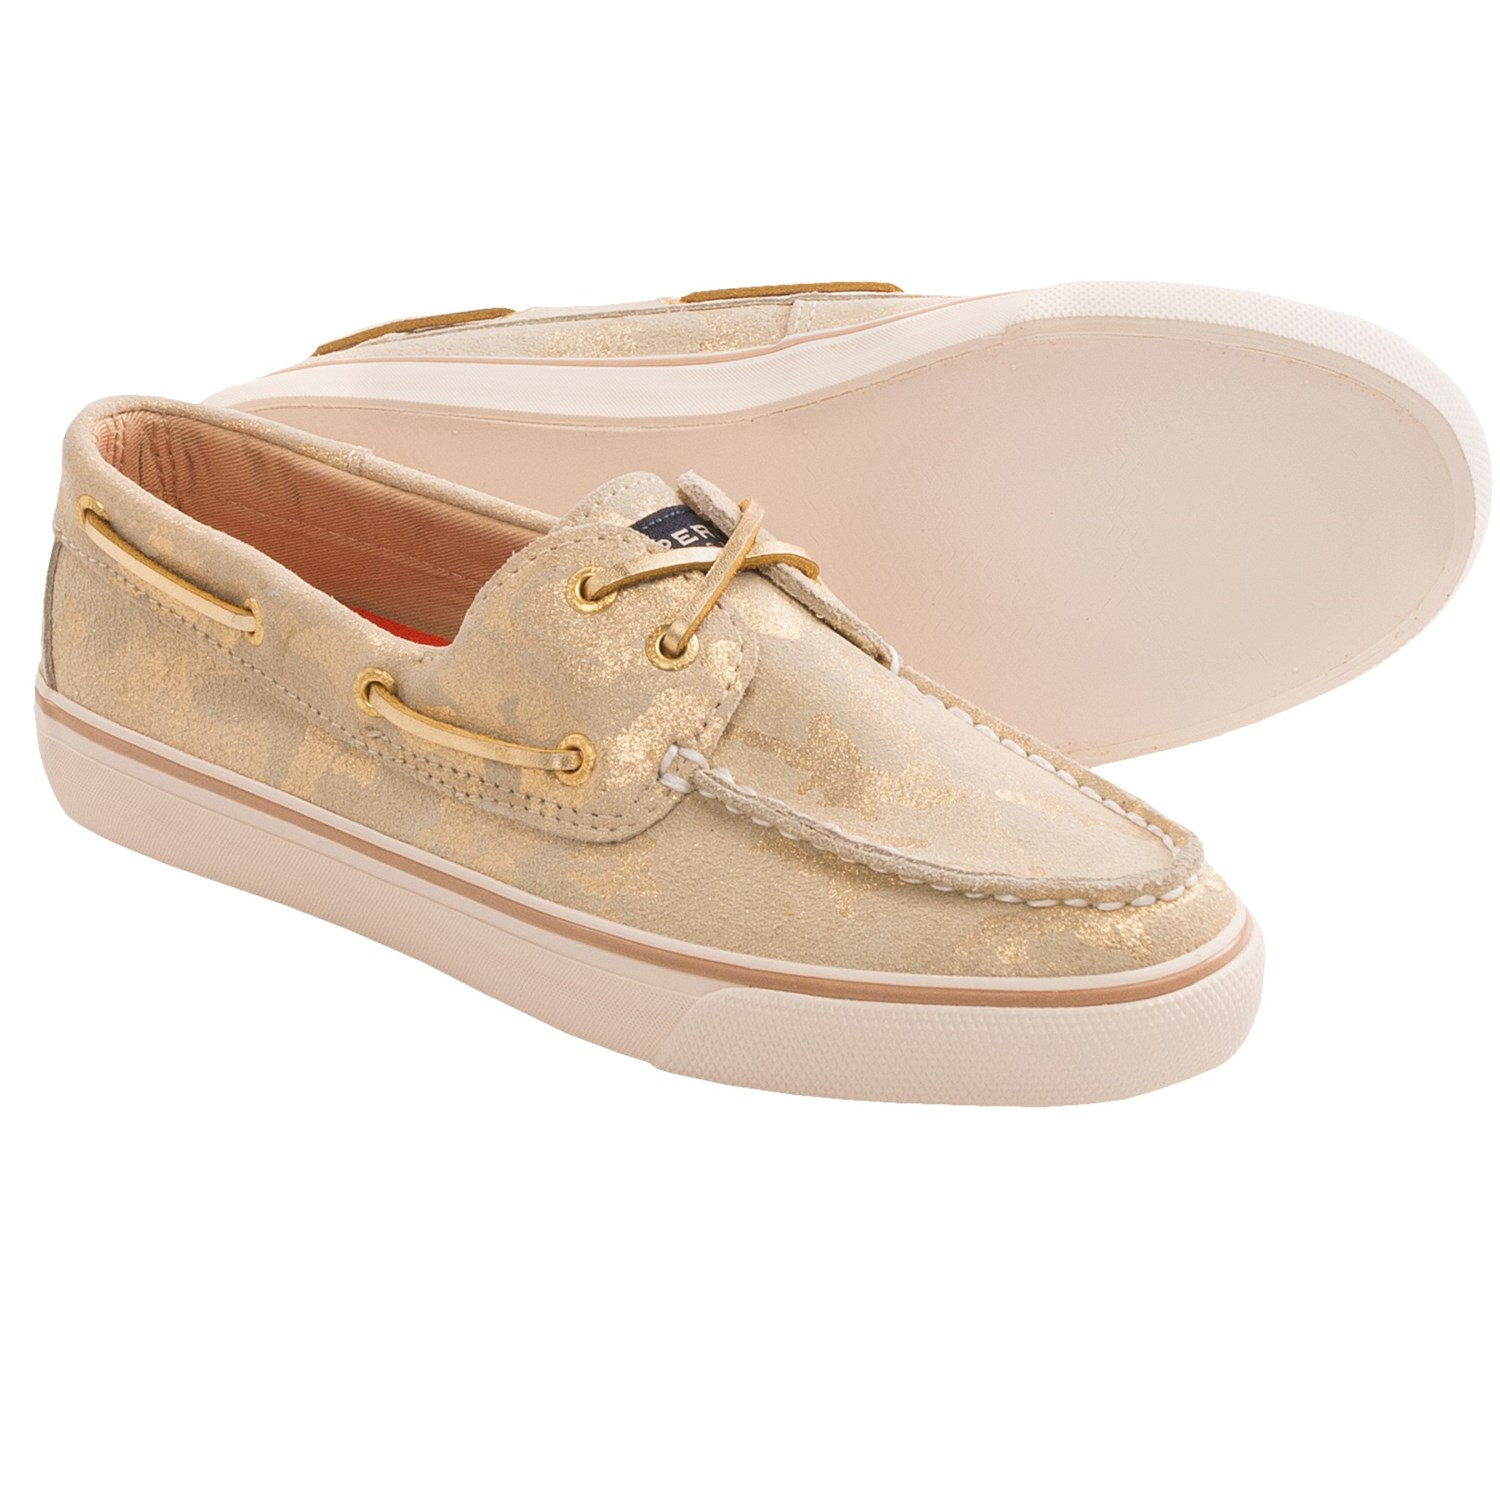 Sperry Top-Sider Bahama Boat Shoes (For Women) in Gold Metallic Camo